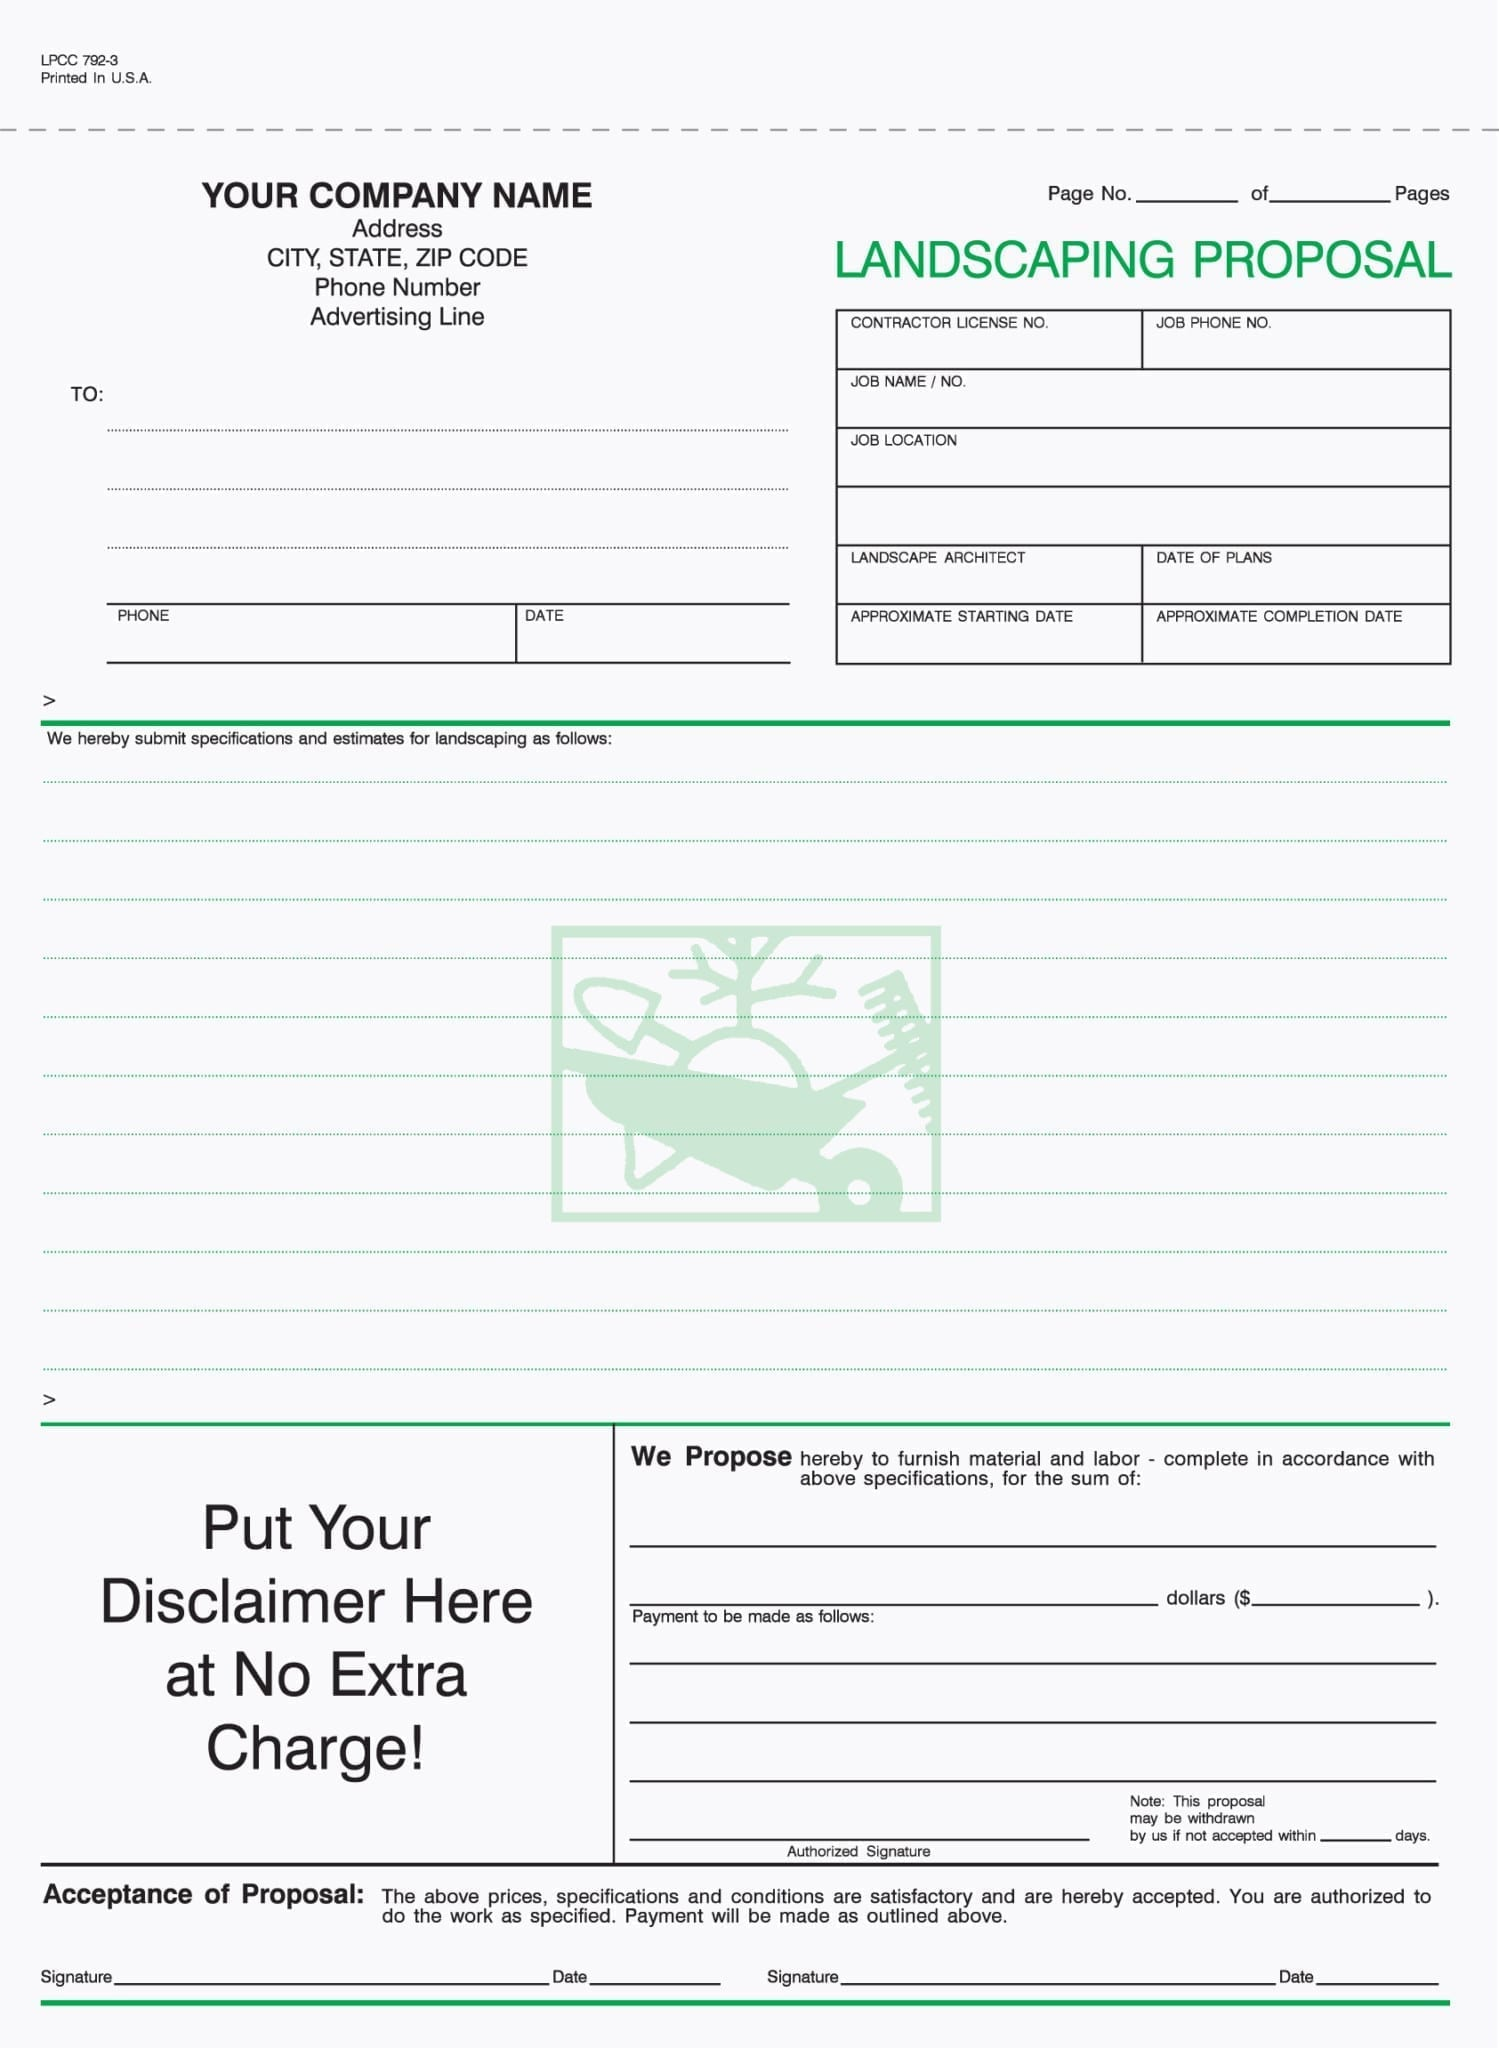 3 Part Lawn Care Proposal Forms With Disclaimer Imprint